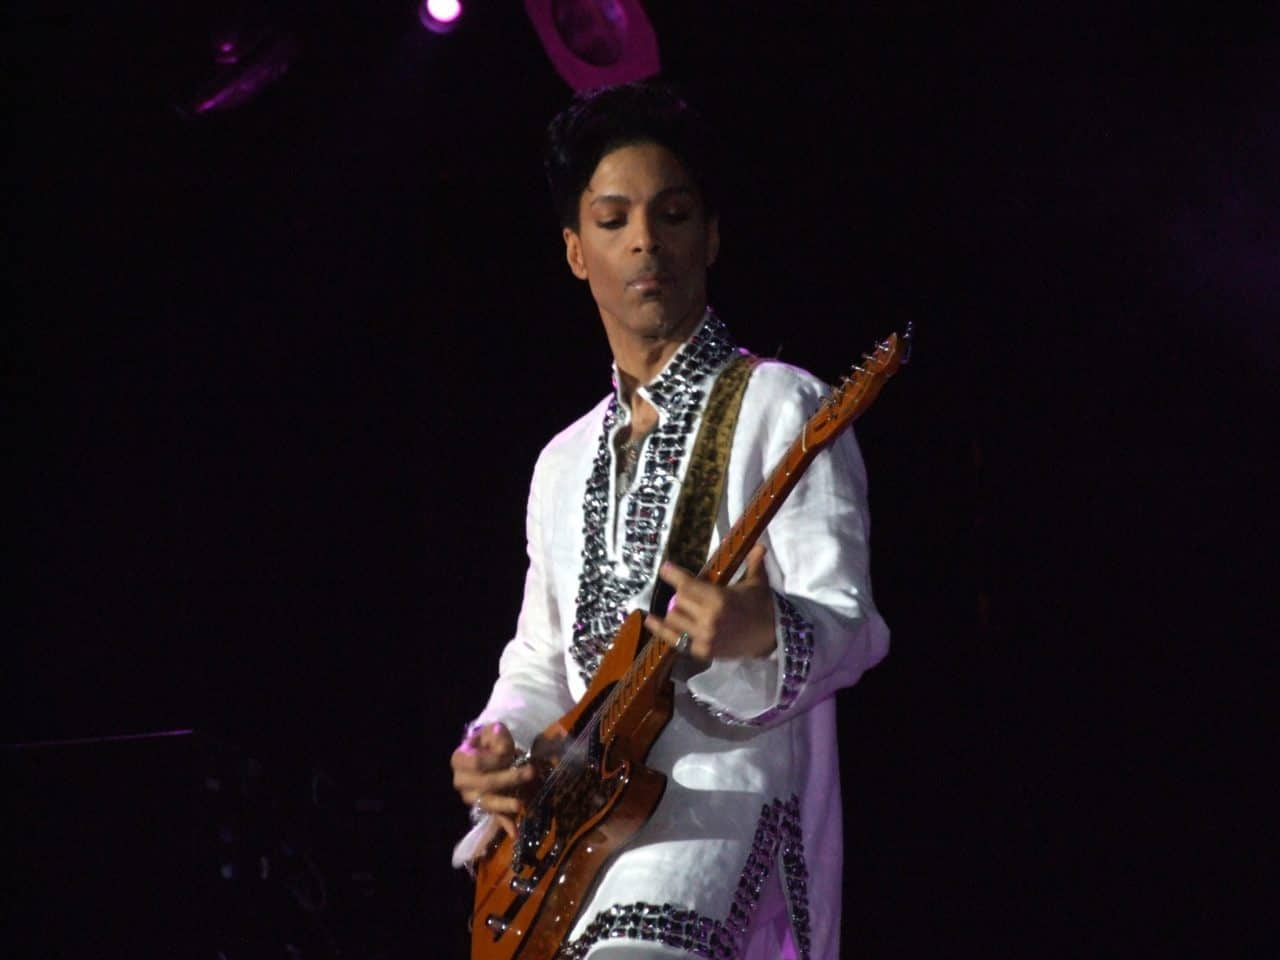 Top 3 Words Made Up by Prince... betcha didn't know these